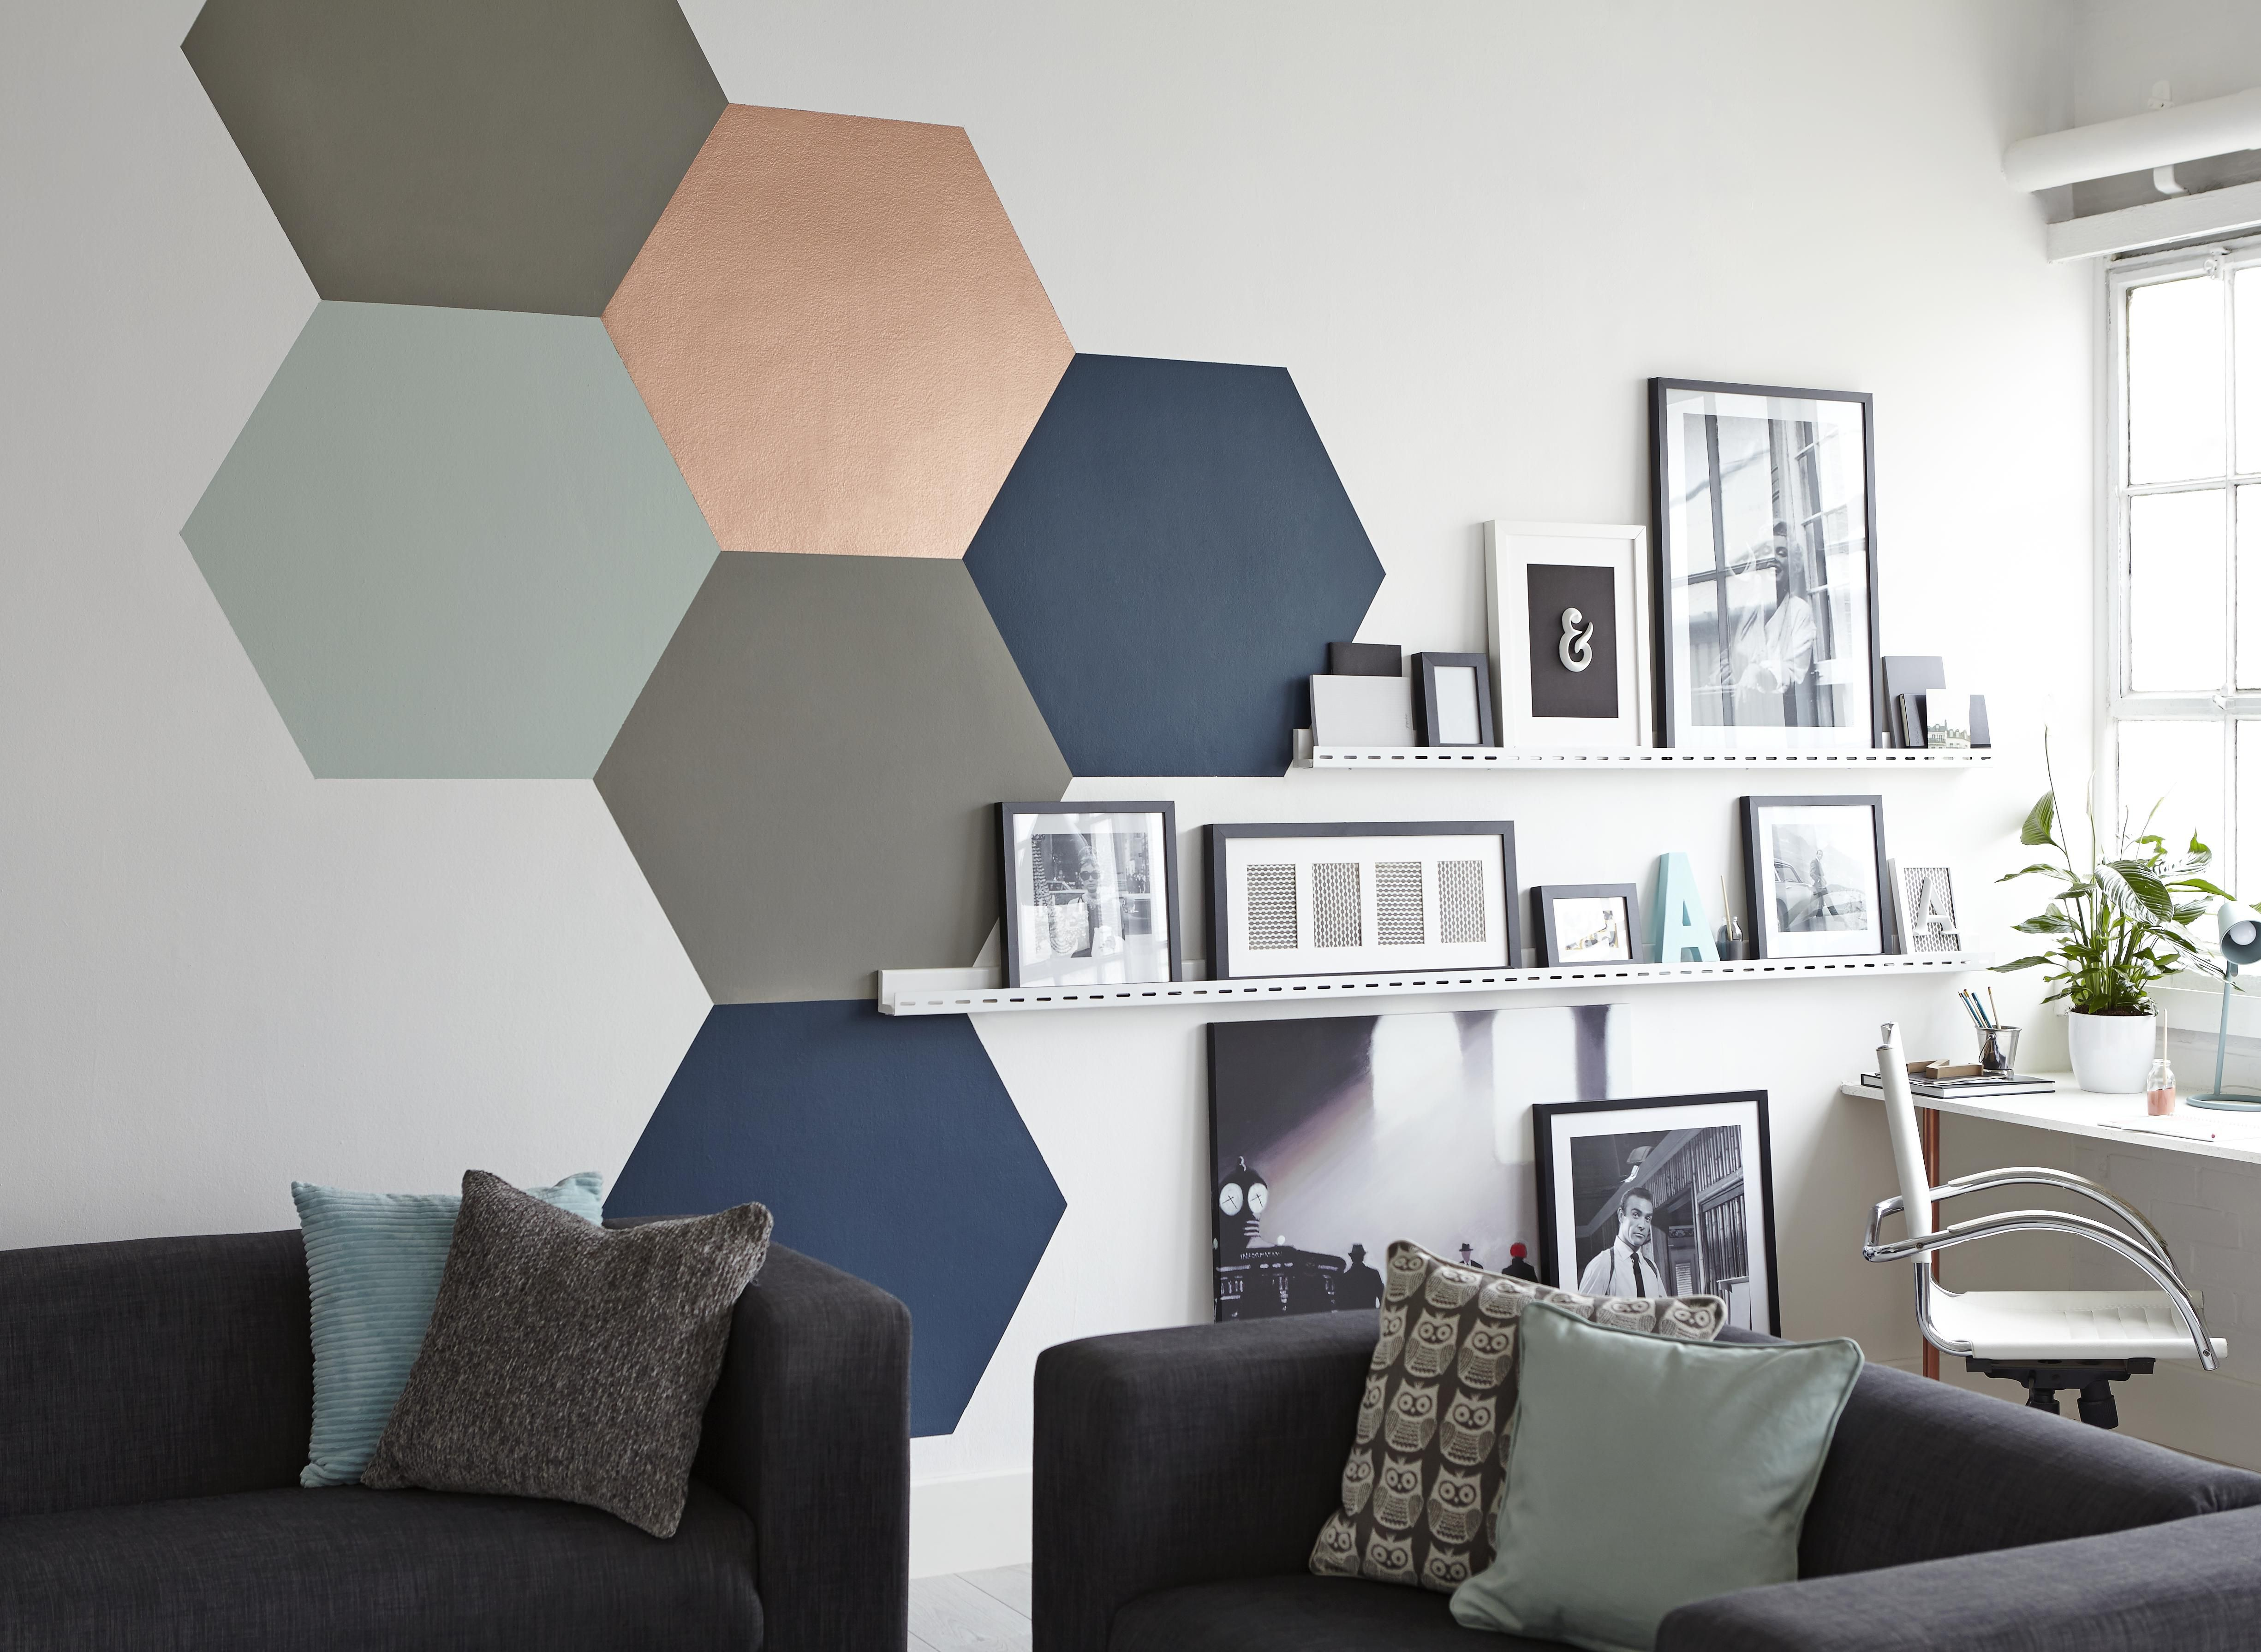 living room wall paint finish designs with chocolate brown sofa interior buying guide ideas advice diy at b q hexagons of different colour and paints on a in